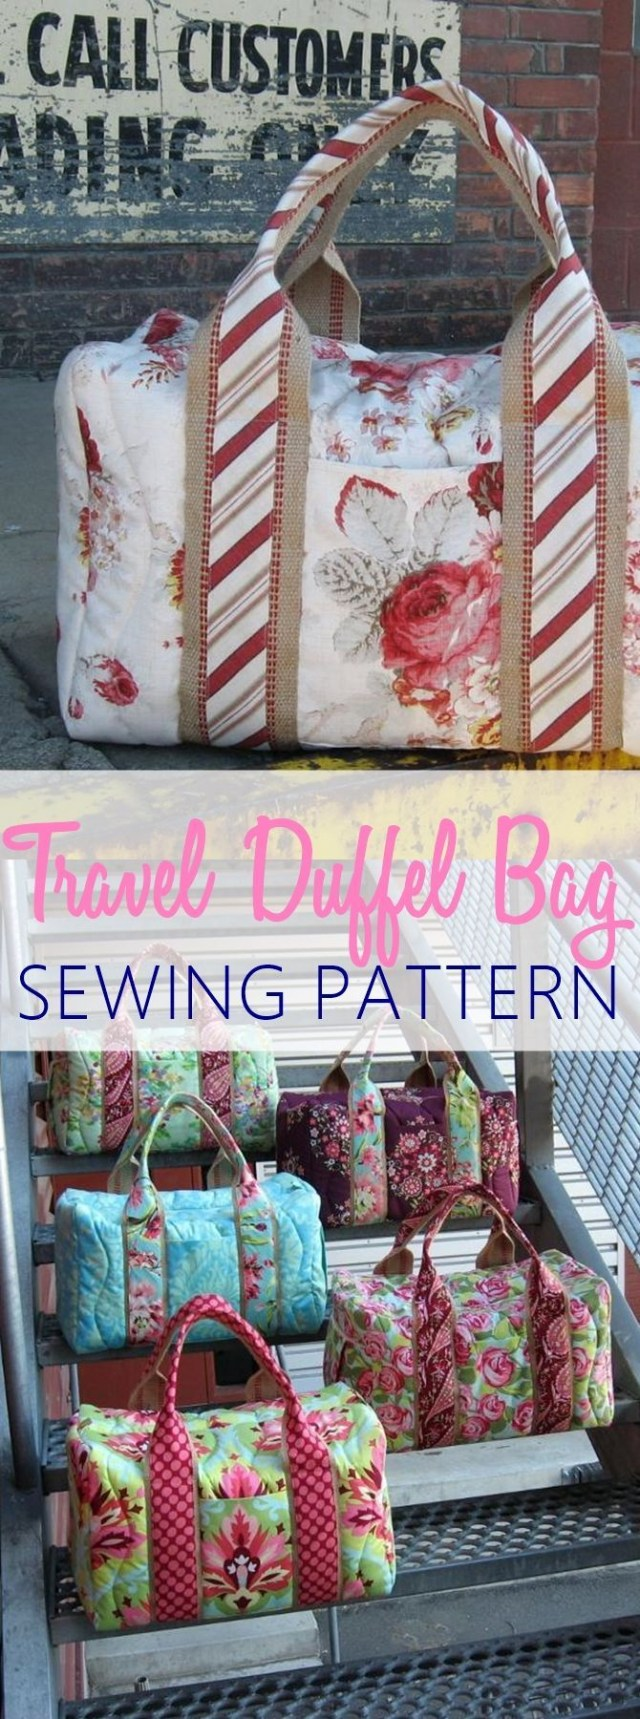 Duffle Bag Sewing Pattern Travel Duffel Bag Sewing Pattern Perfect For Weekends And Night